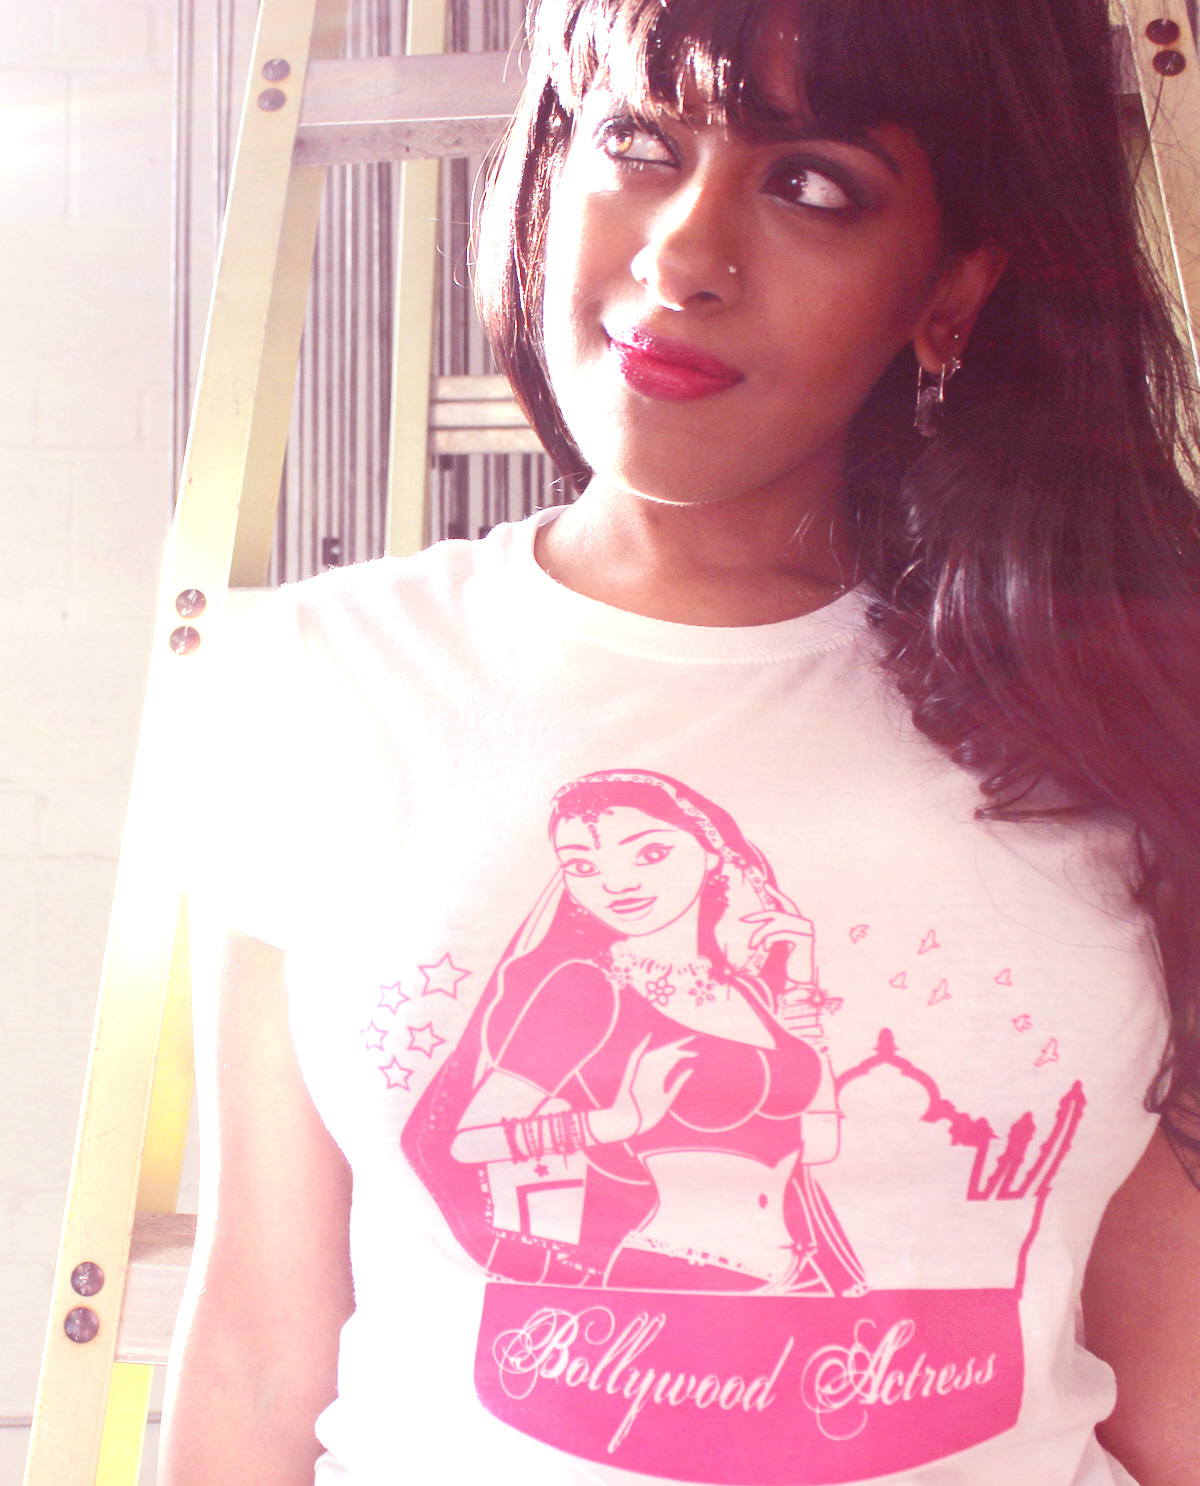 South Asian female model wearing Bollywood Actress South Asian Desi Themed Graphic Design t.shirts by Brown Man Clothing Co.